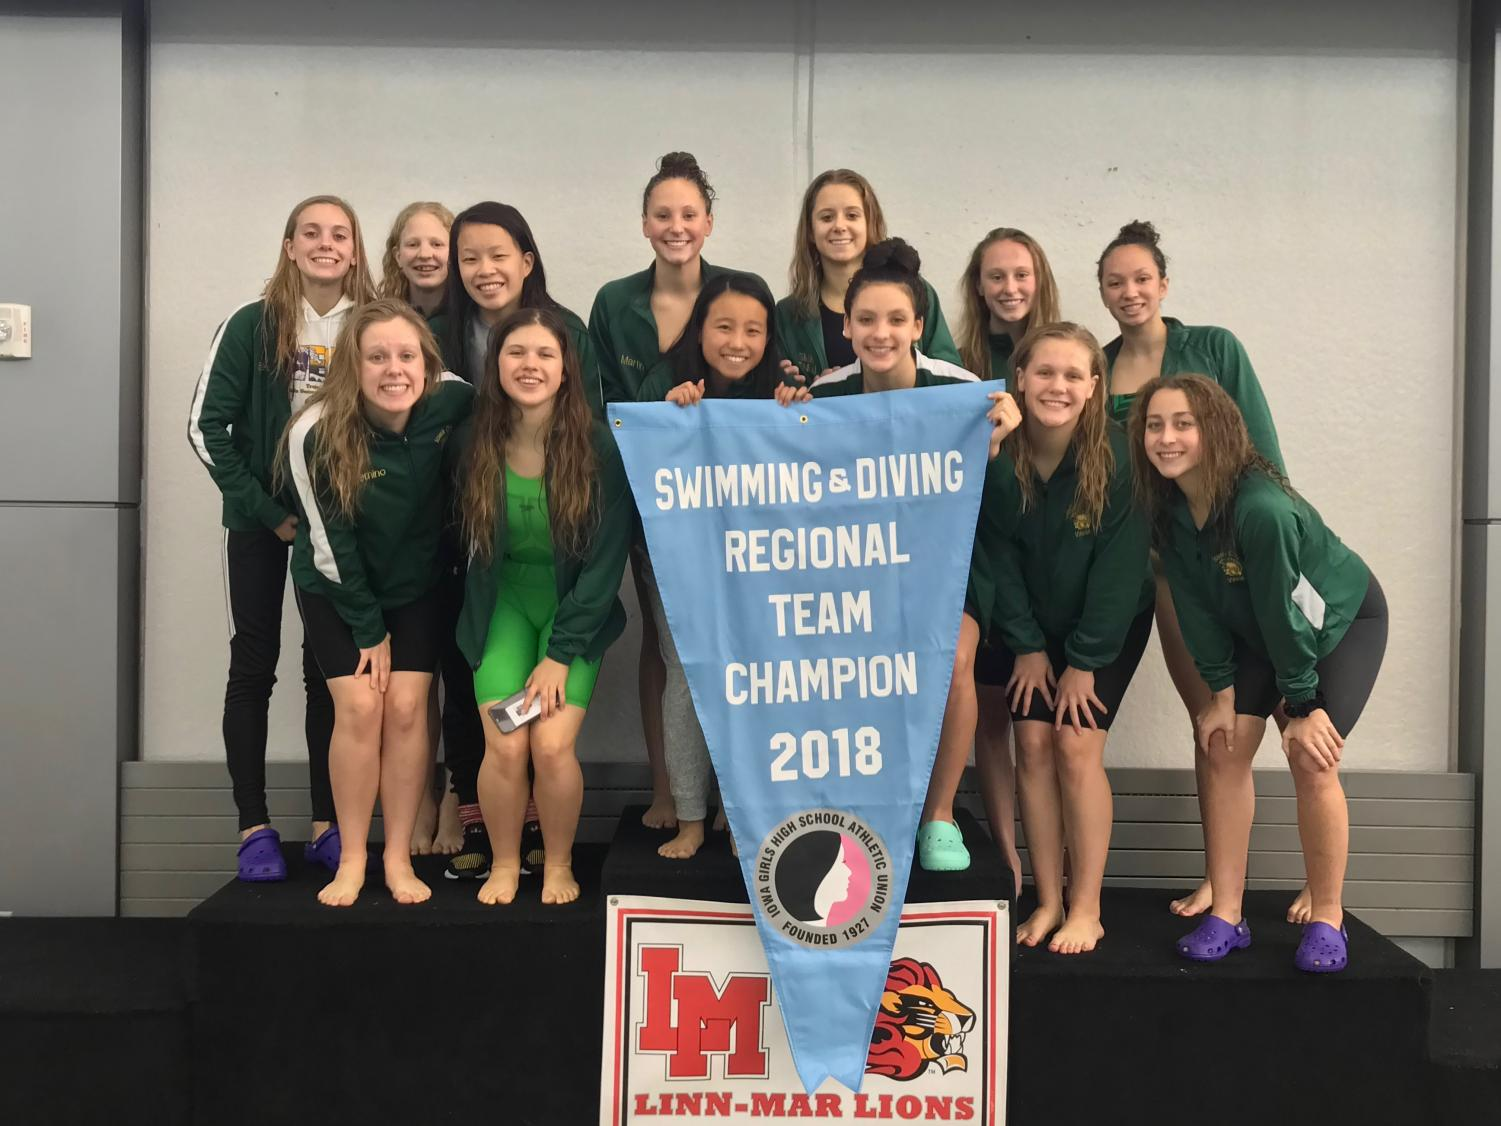 West's girls swimming team poses after winning regionals on October 27